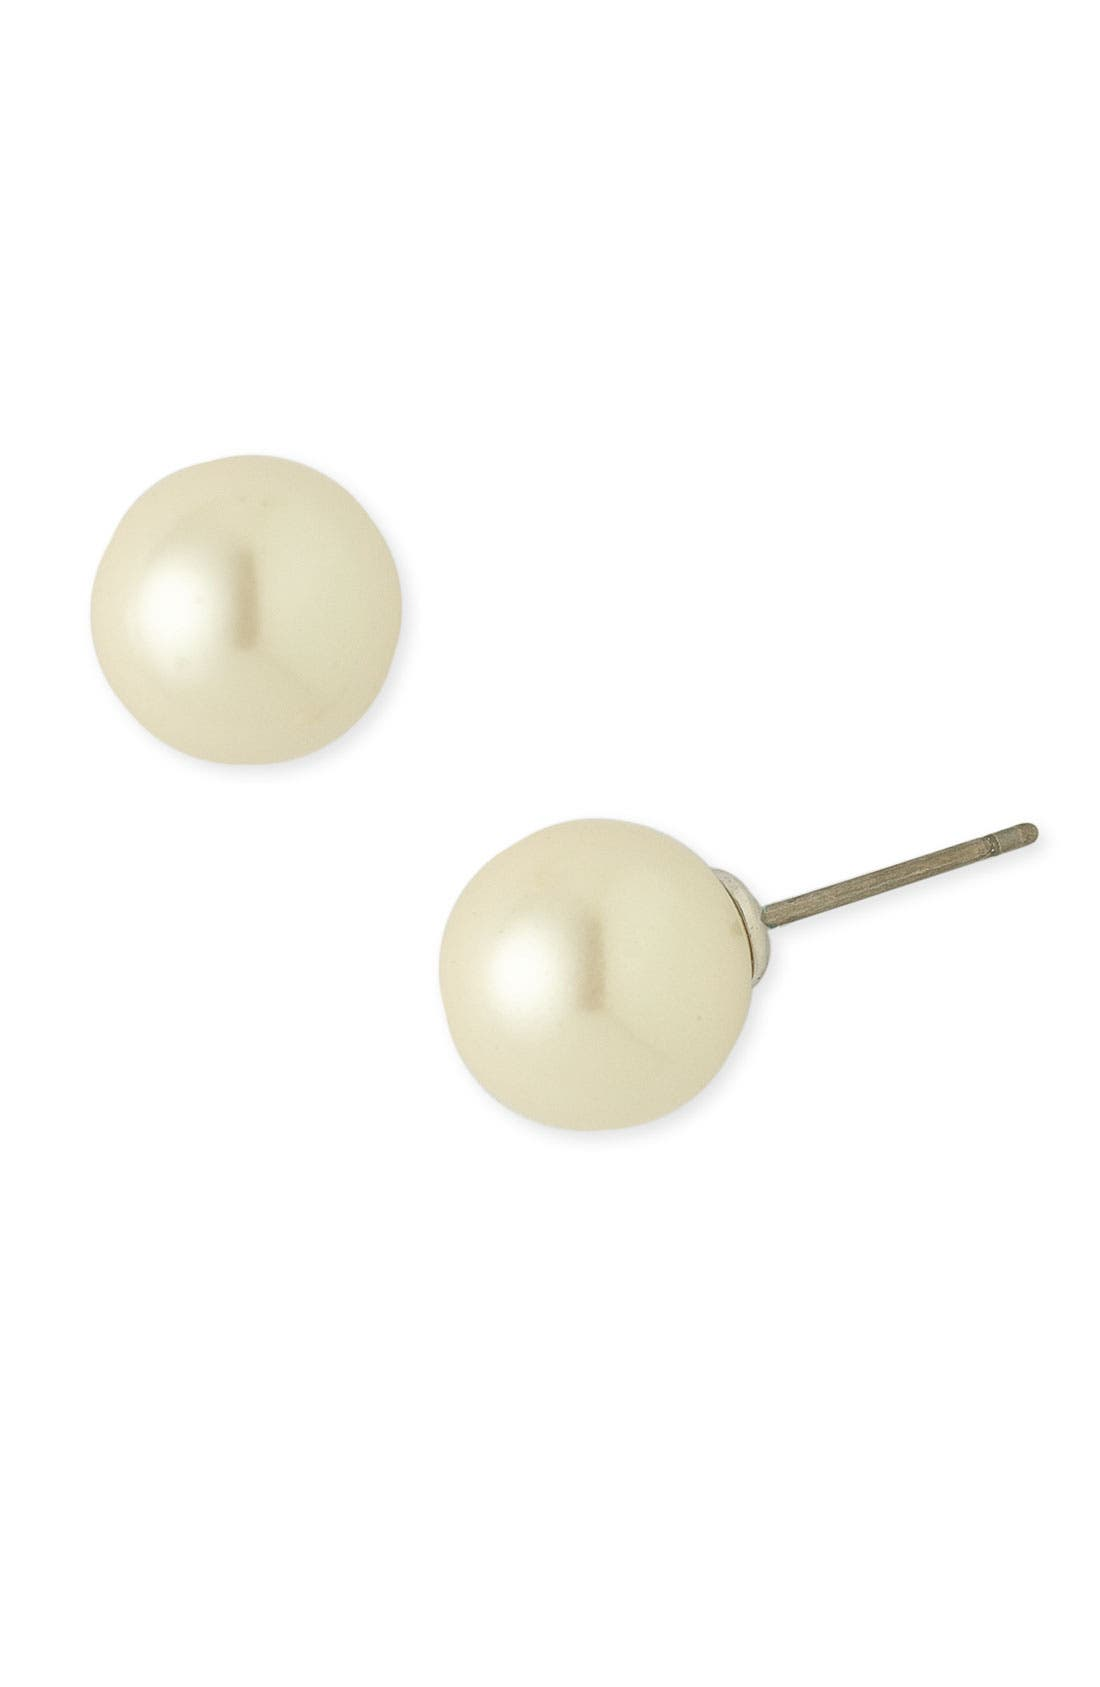 Alternate Image 1 Selected - Nordstrom 10mm Glass Pearl Stud Earrings